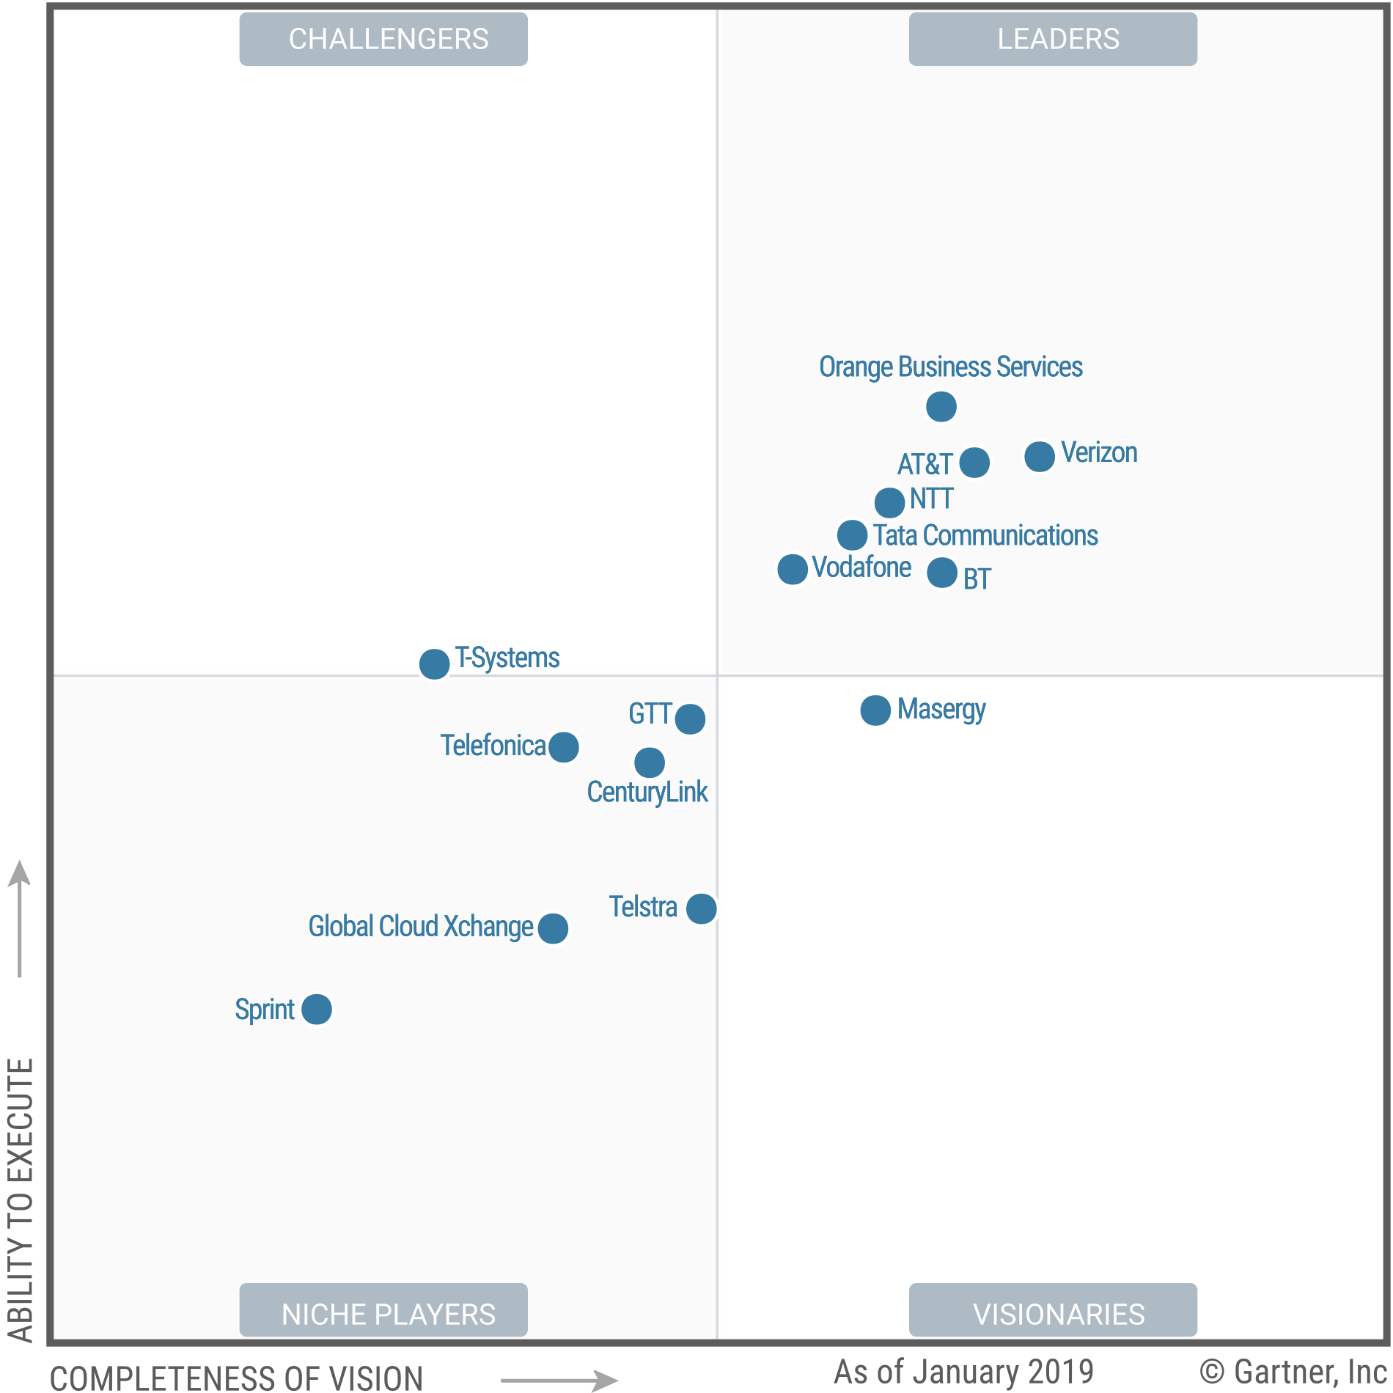 Magic Quadrant for Network Services, Global